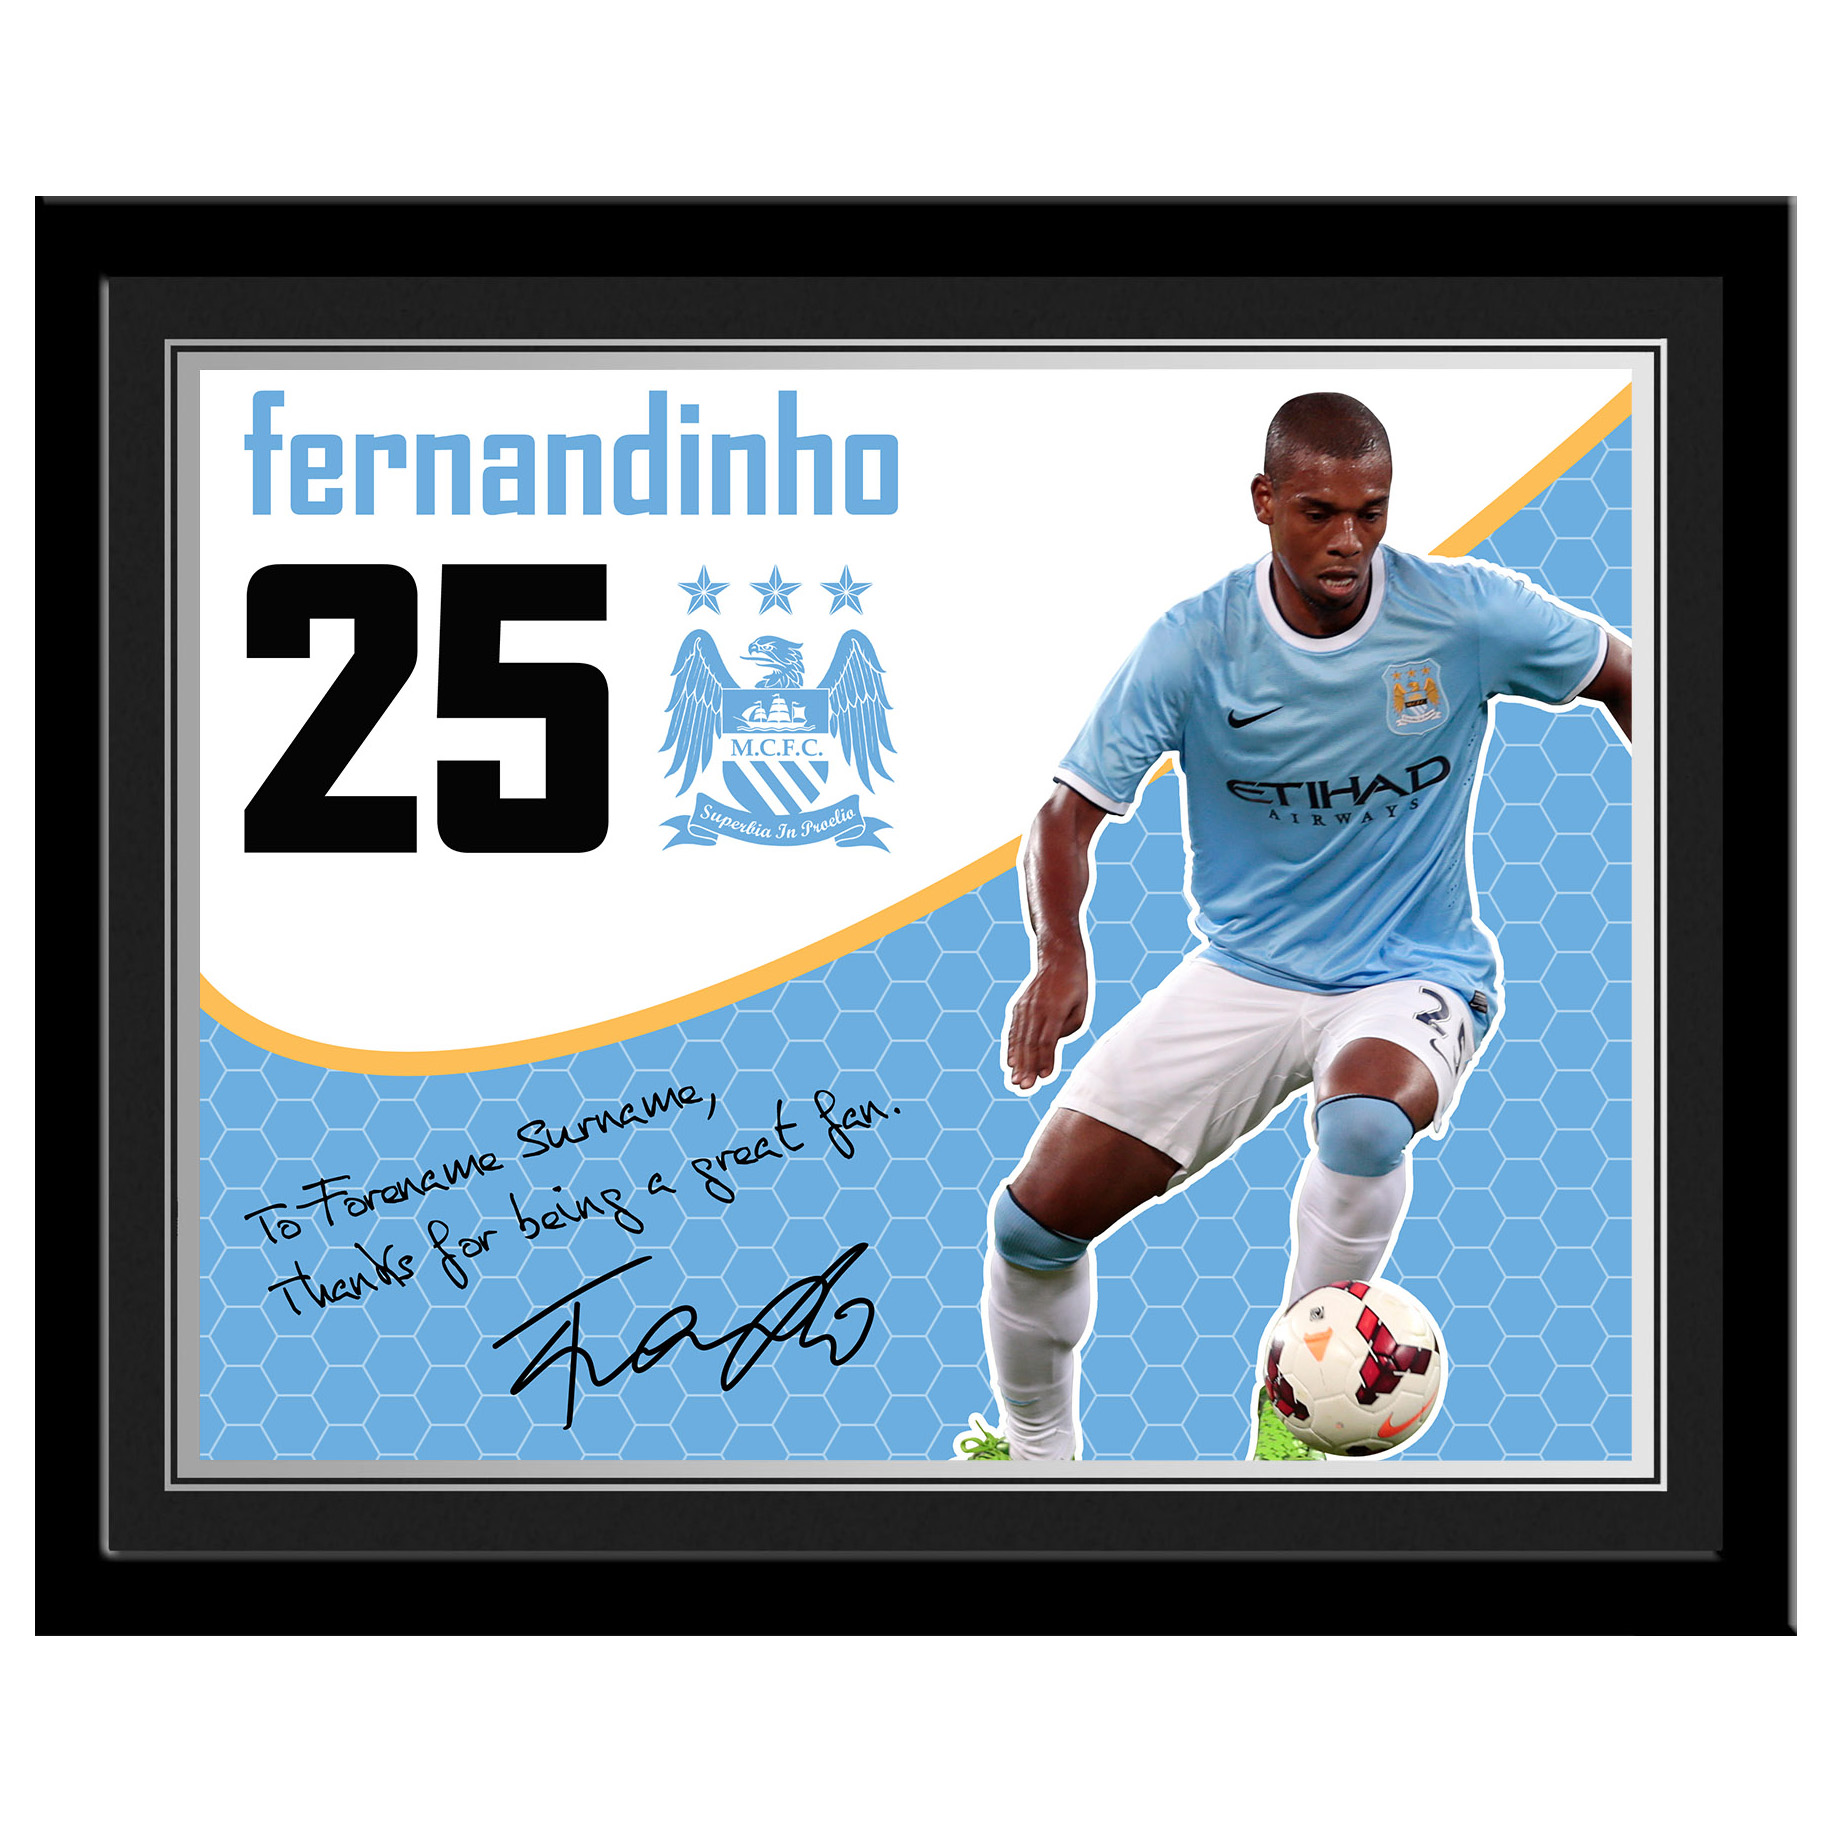 Manchester City Personalised Swirl Signature Photo Framed - Fernandinho